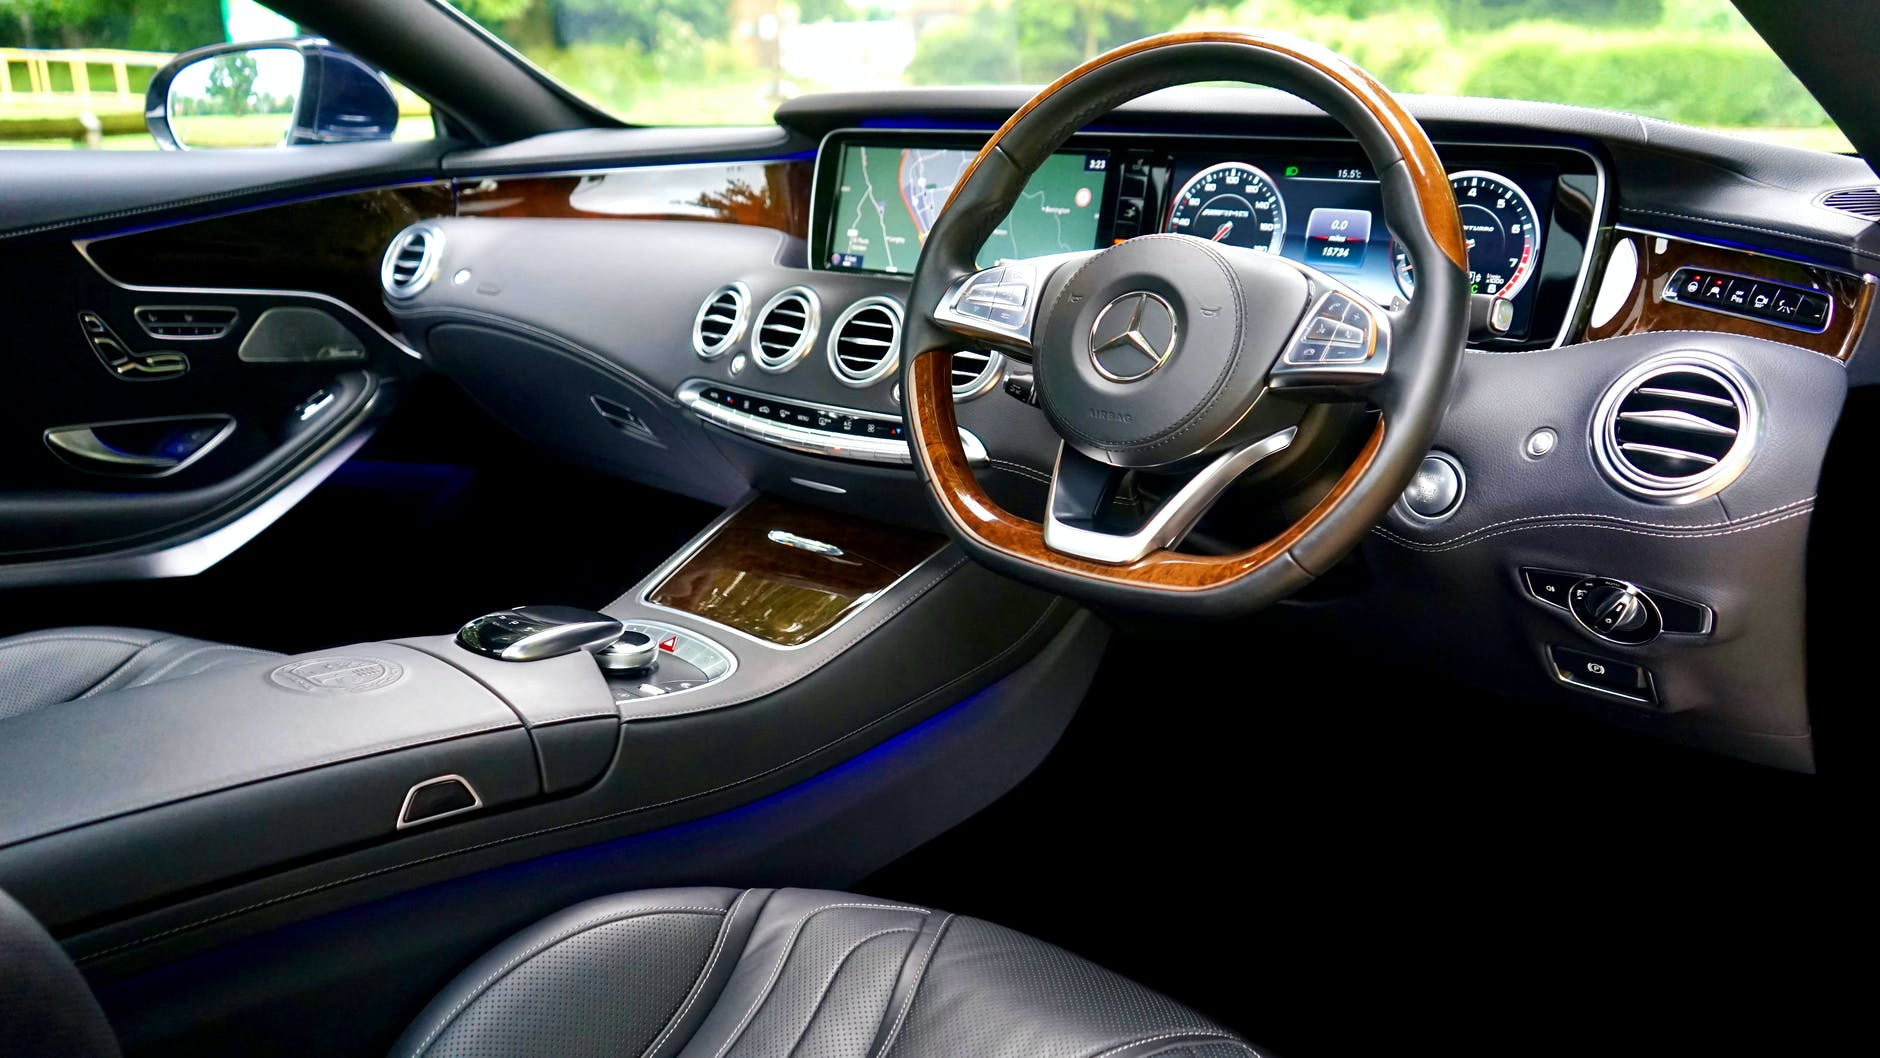 Black and brown car interior